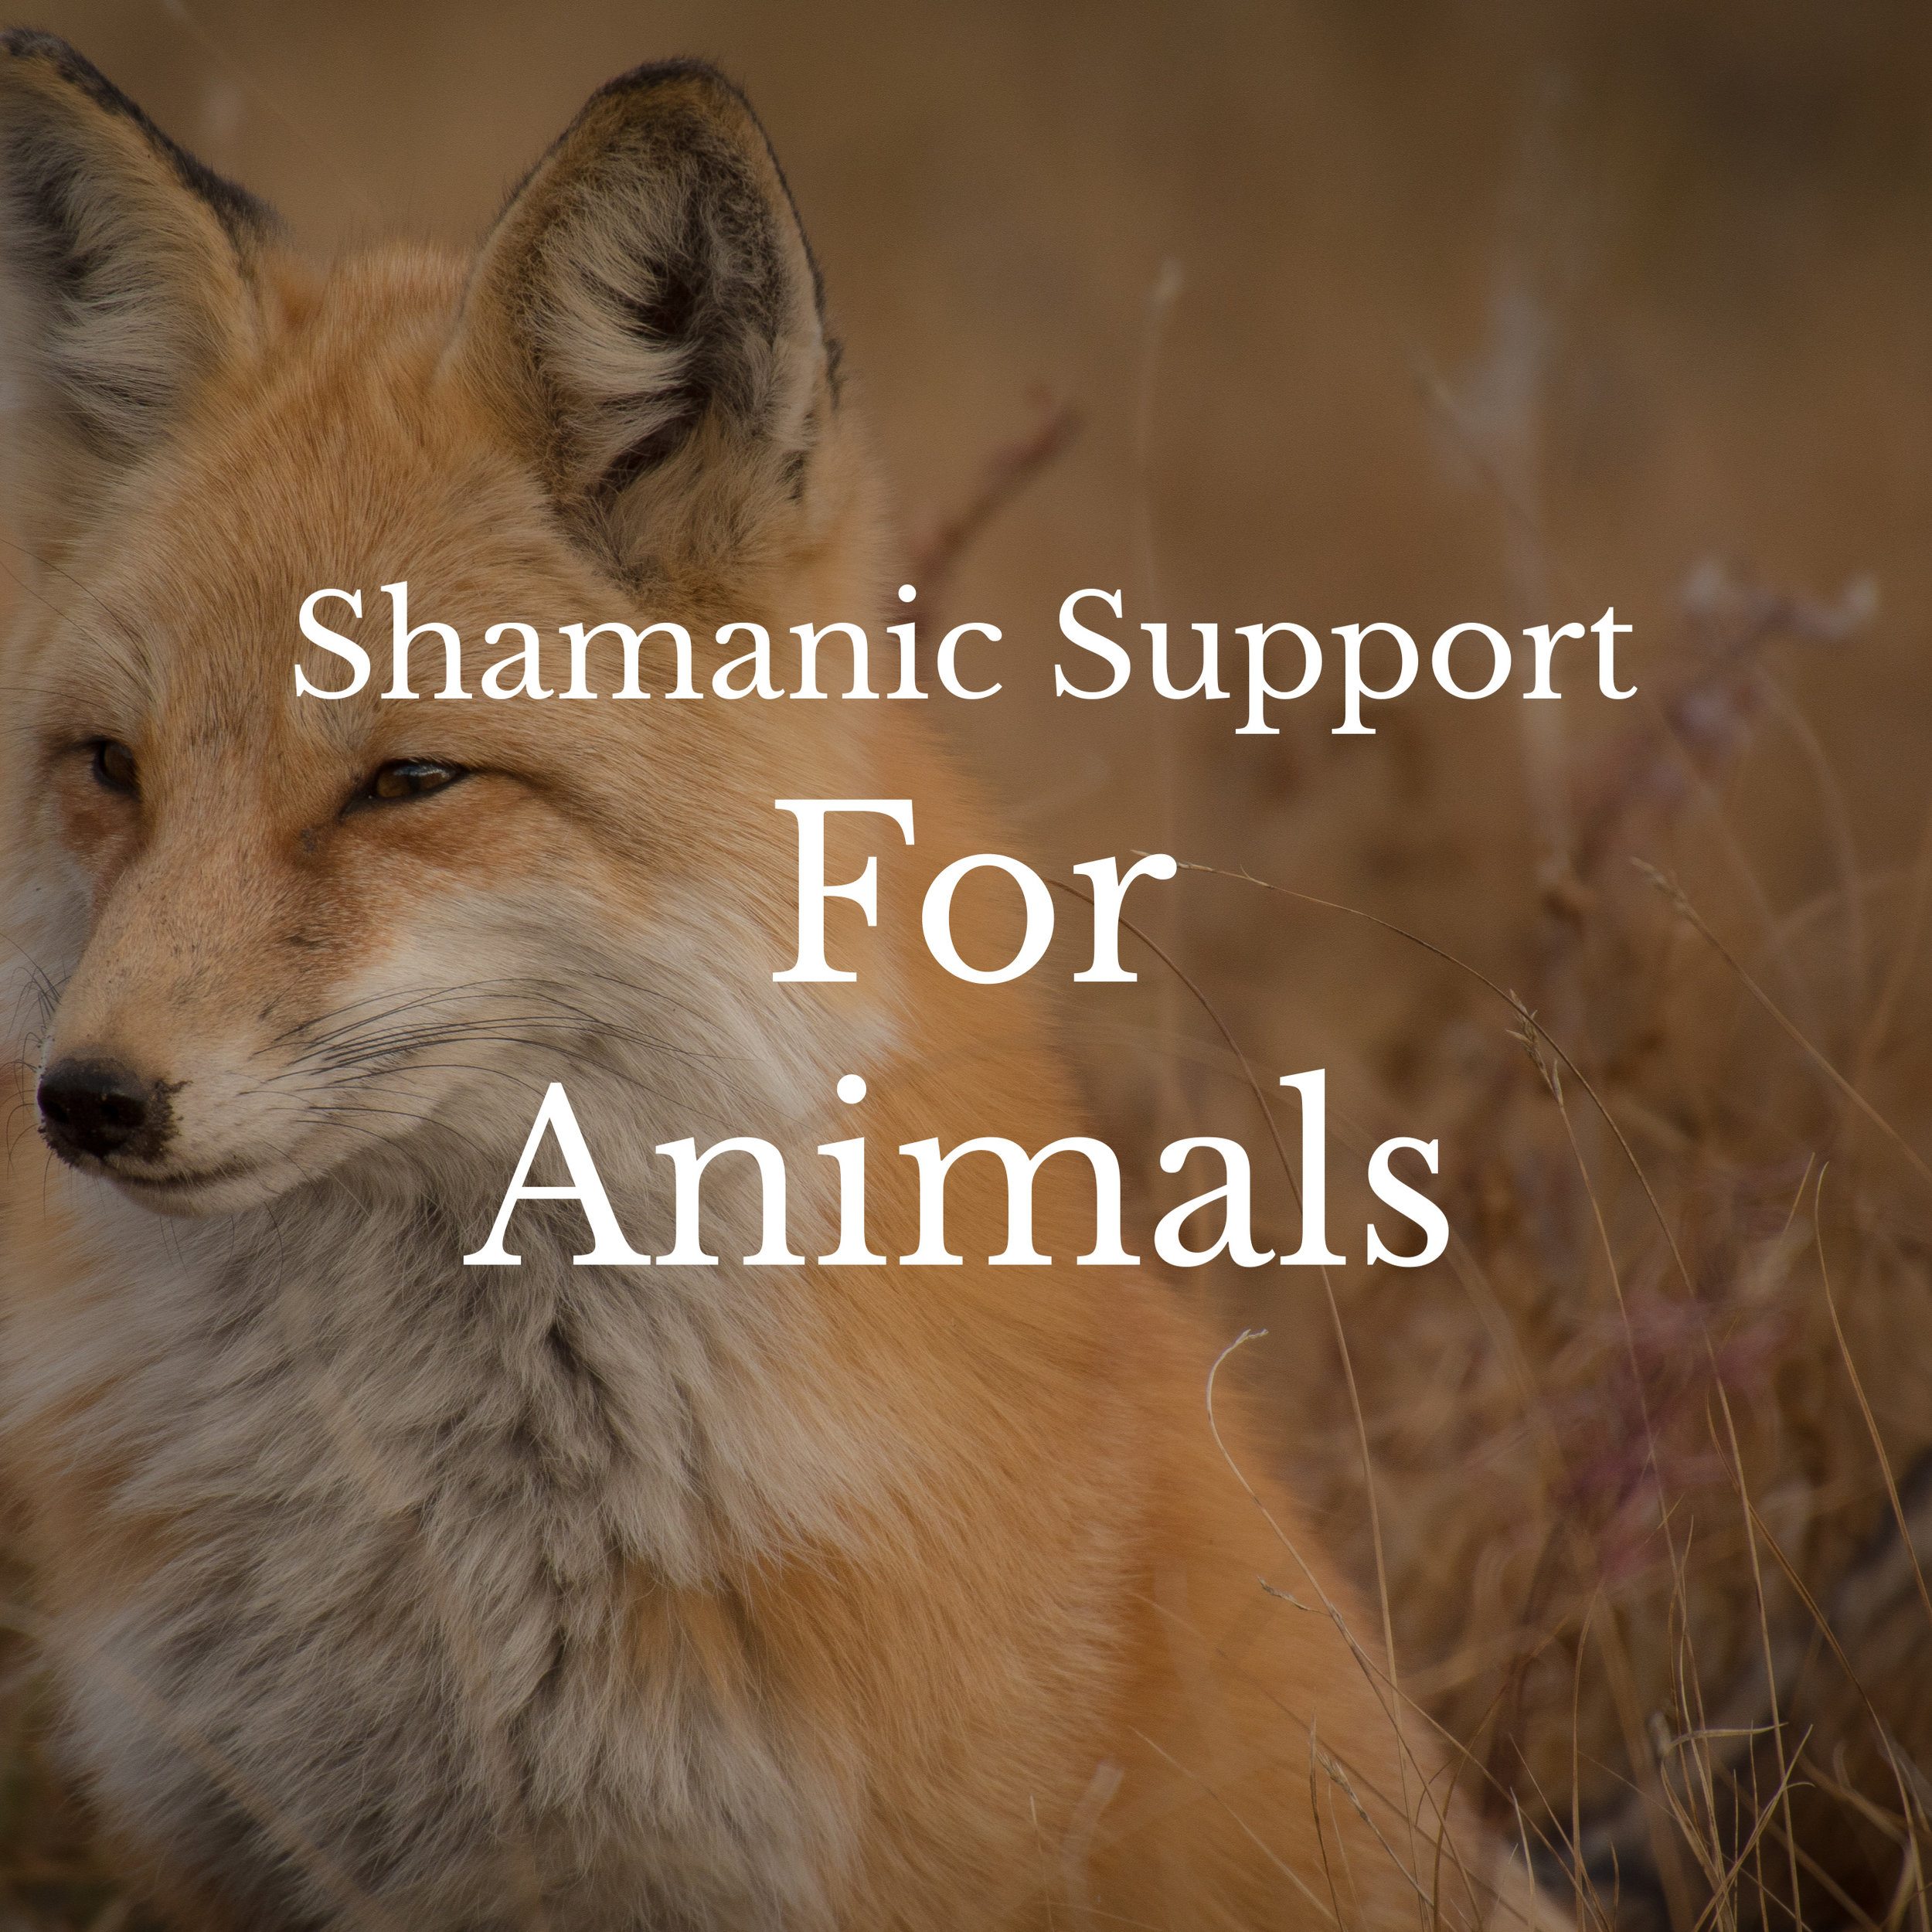 Shamanic support and animal communication for animals of all kinds. Offered over the phone only.